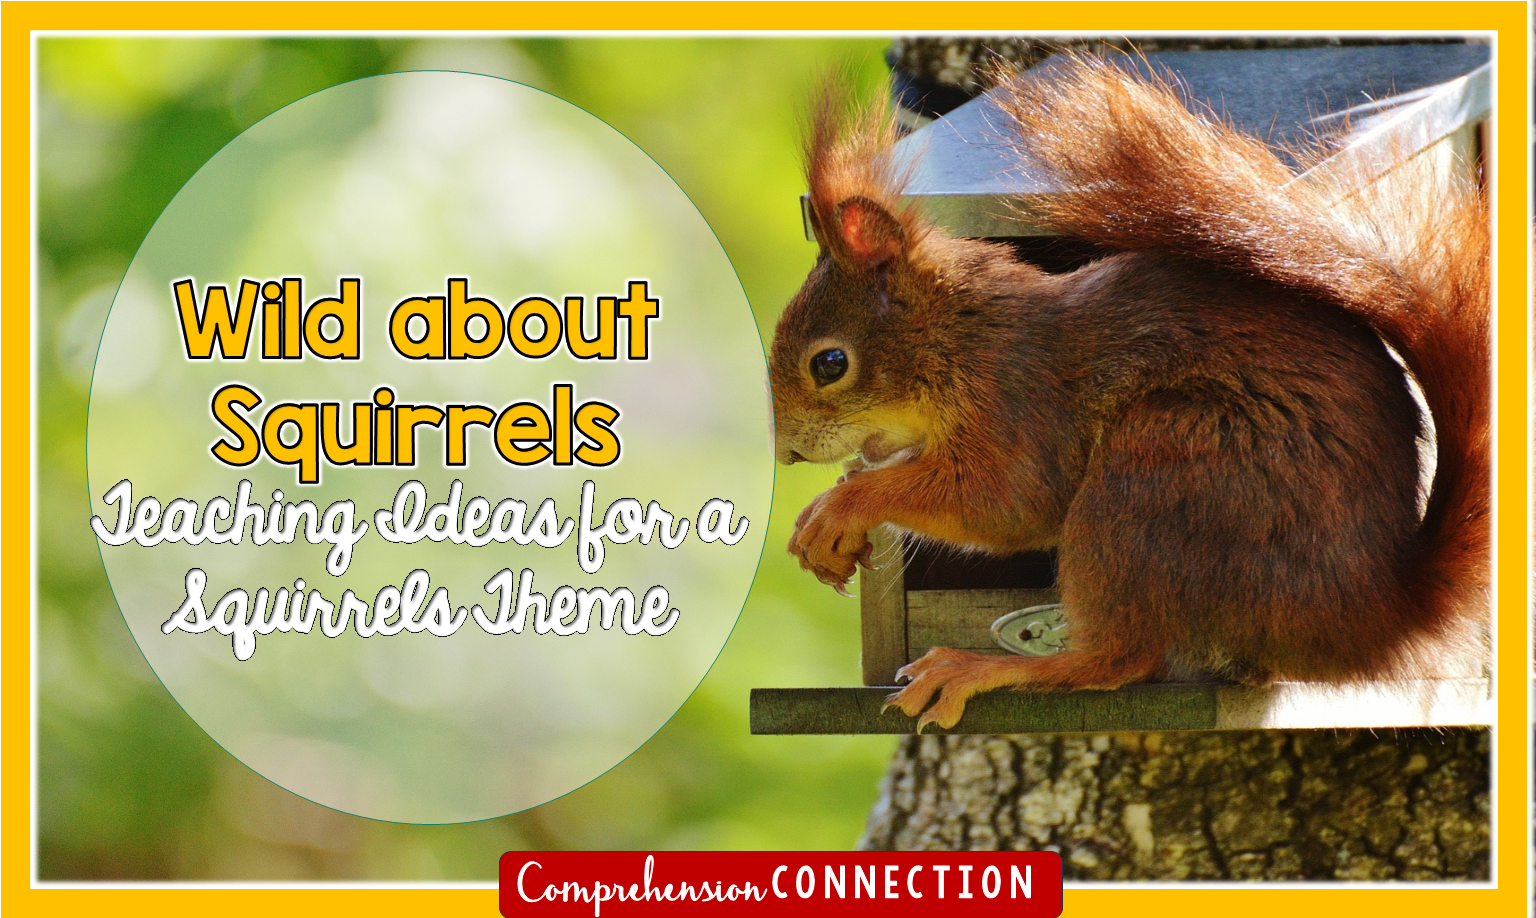 Fall means the squirrels get active, and they're fascinating to watch. Check out this post for a collection of fun squirrel themed teaching ideas for the squirrel lovers in your room.